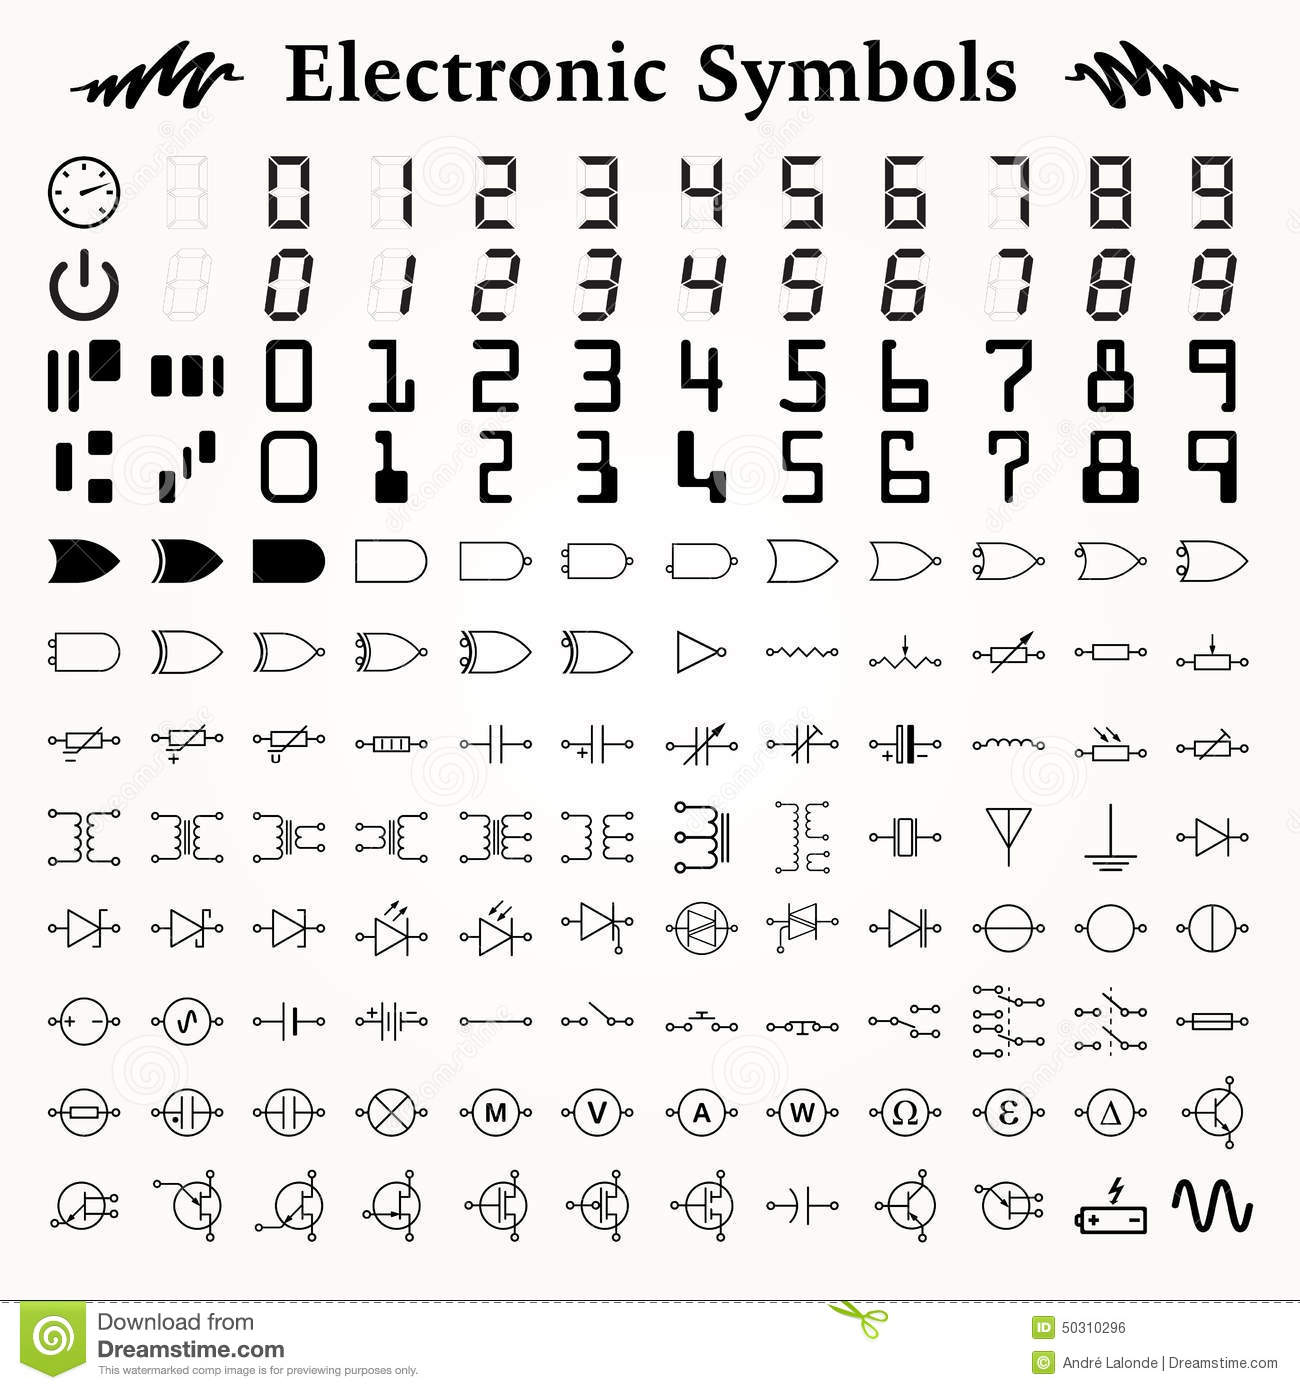 Electronic Symbols stock vector. Illustration of diagram - 50310296